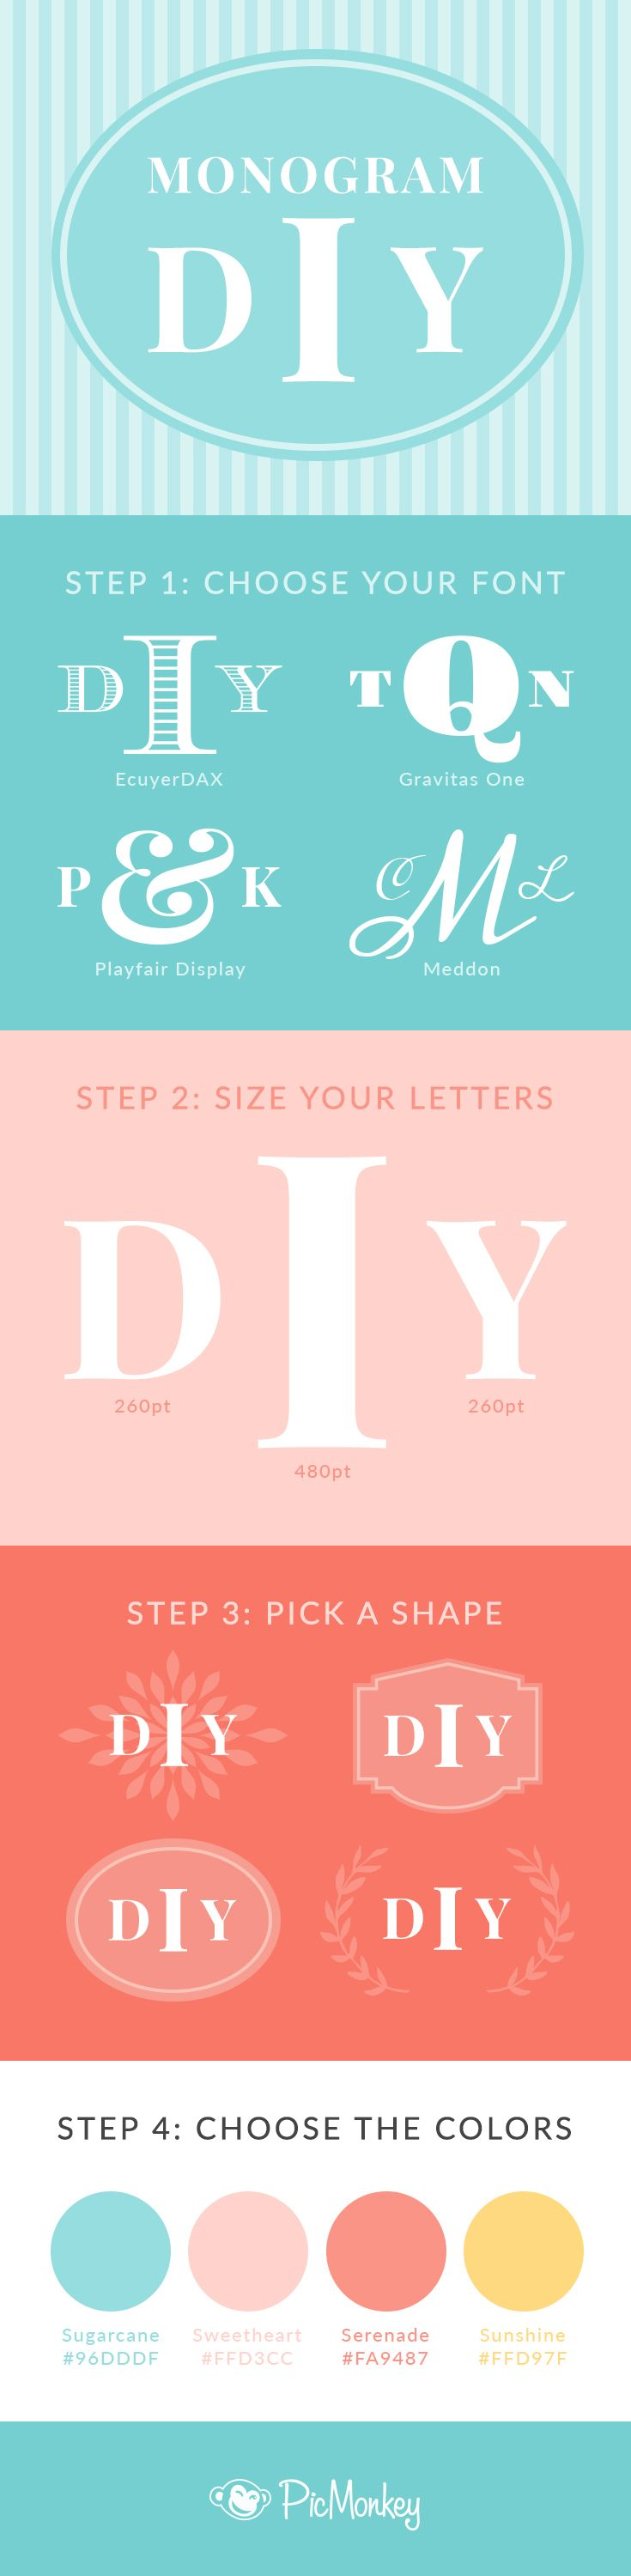 best images about diy on pinterest